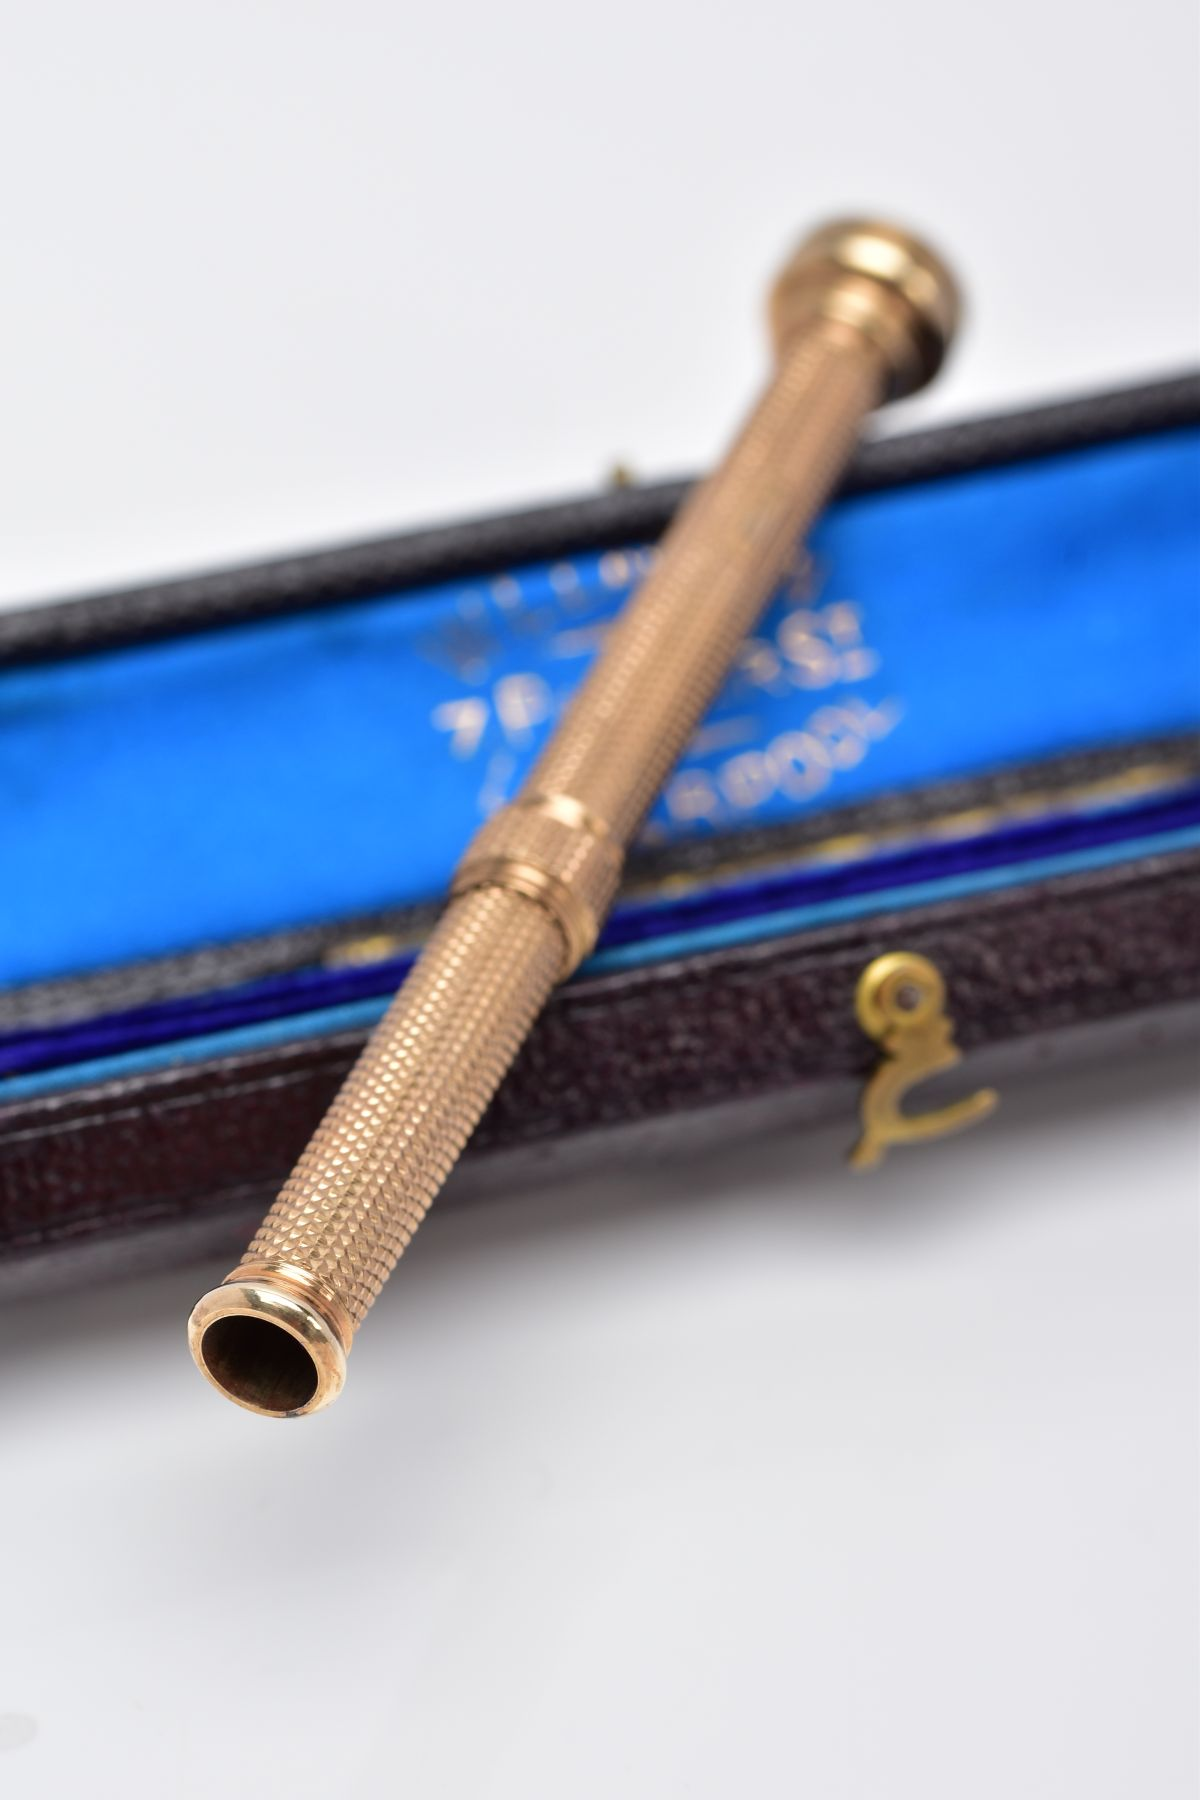 A YELLOW METAL PROPELLING PENCIL, engine turn design, set with a bloodstone terminal, approximate - Image 3 of 5